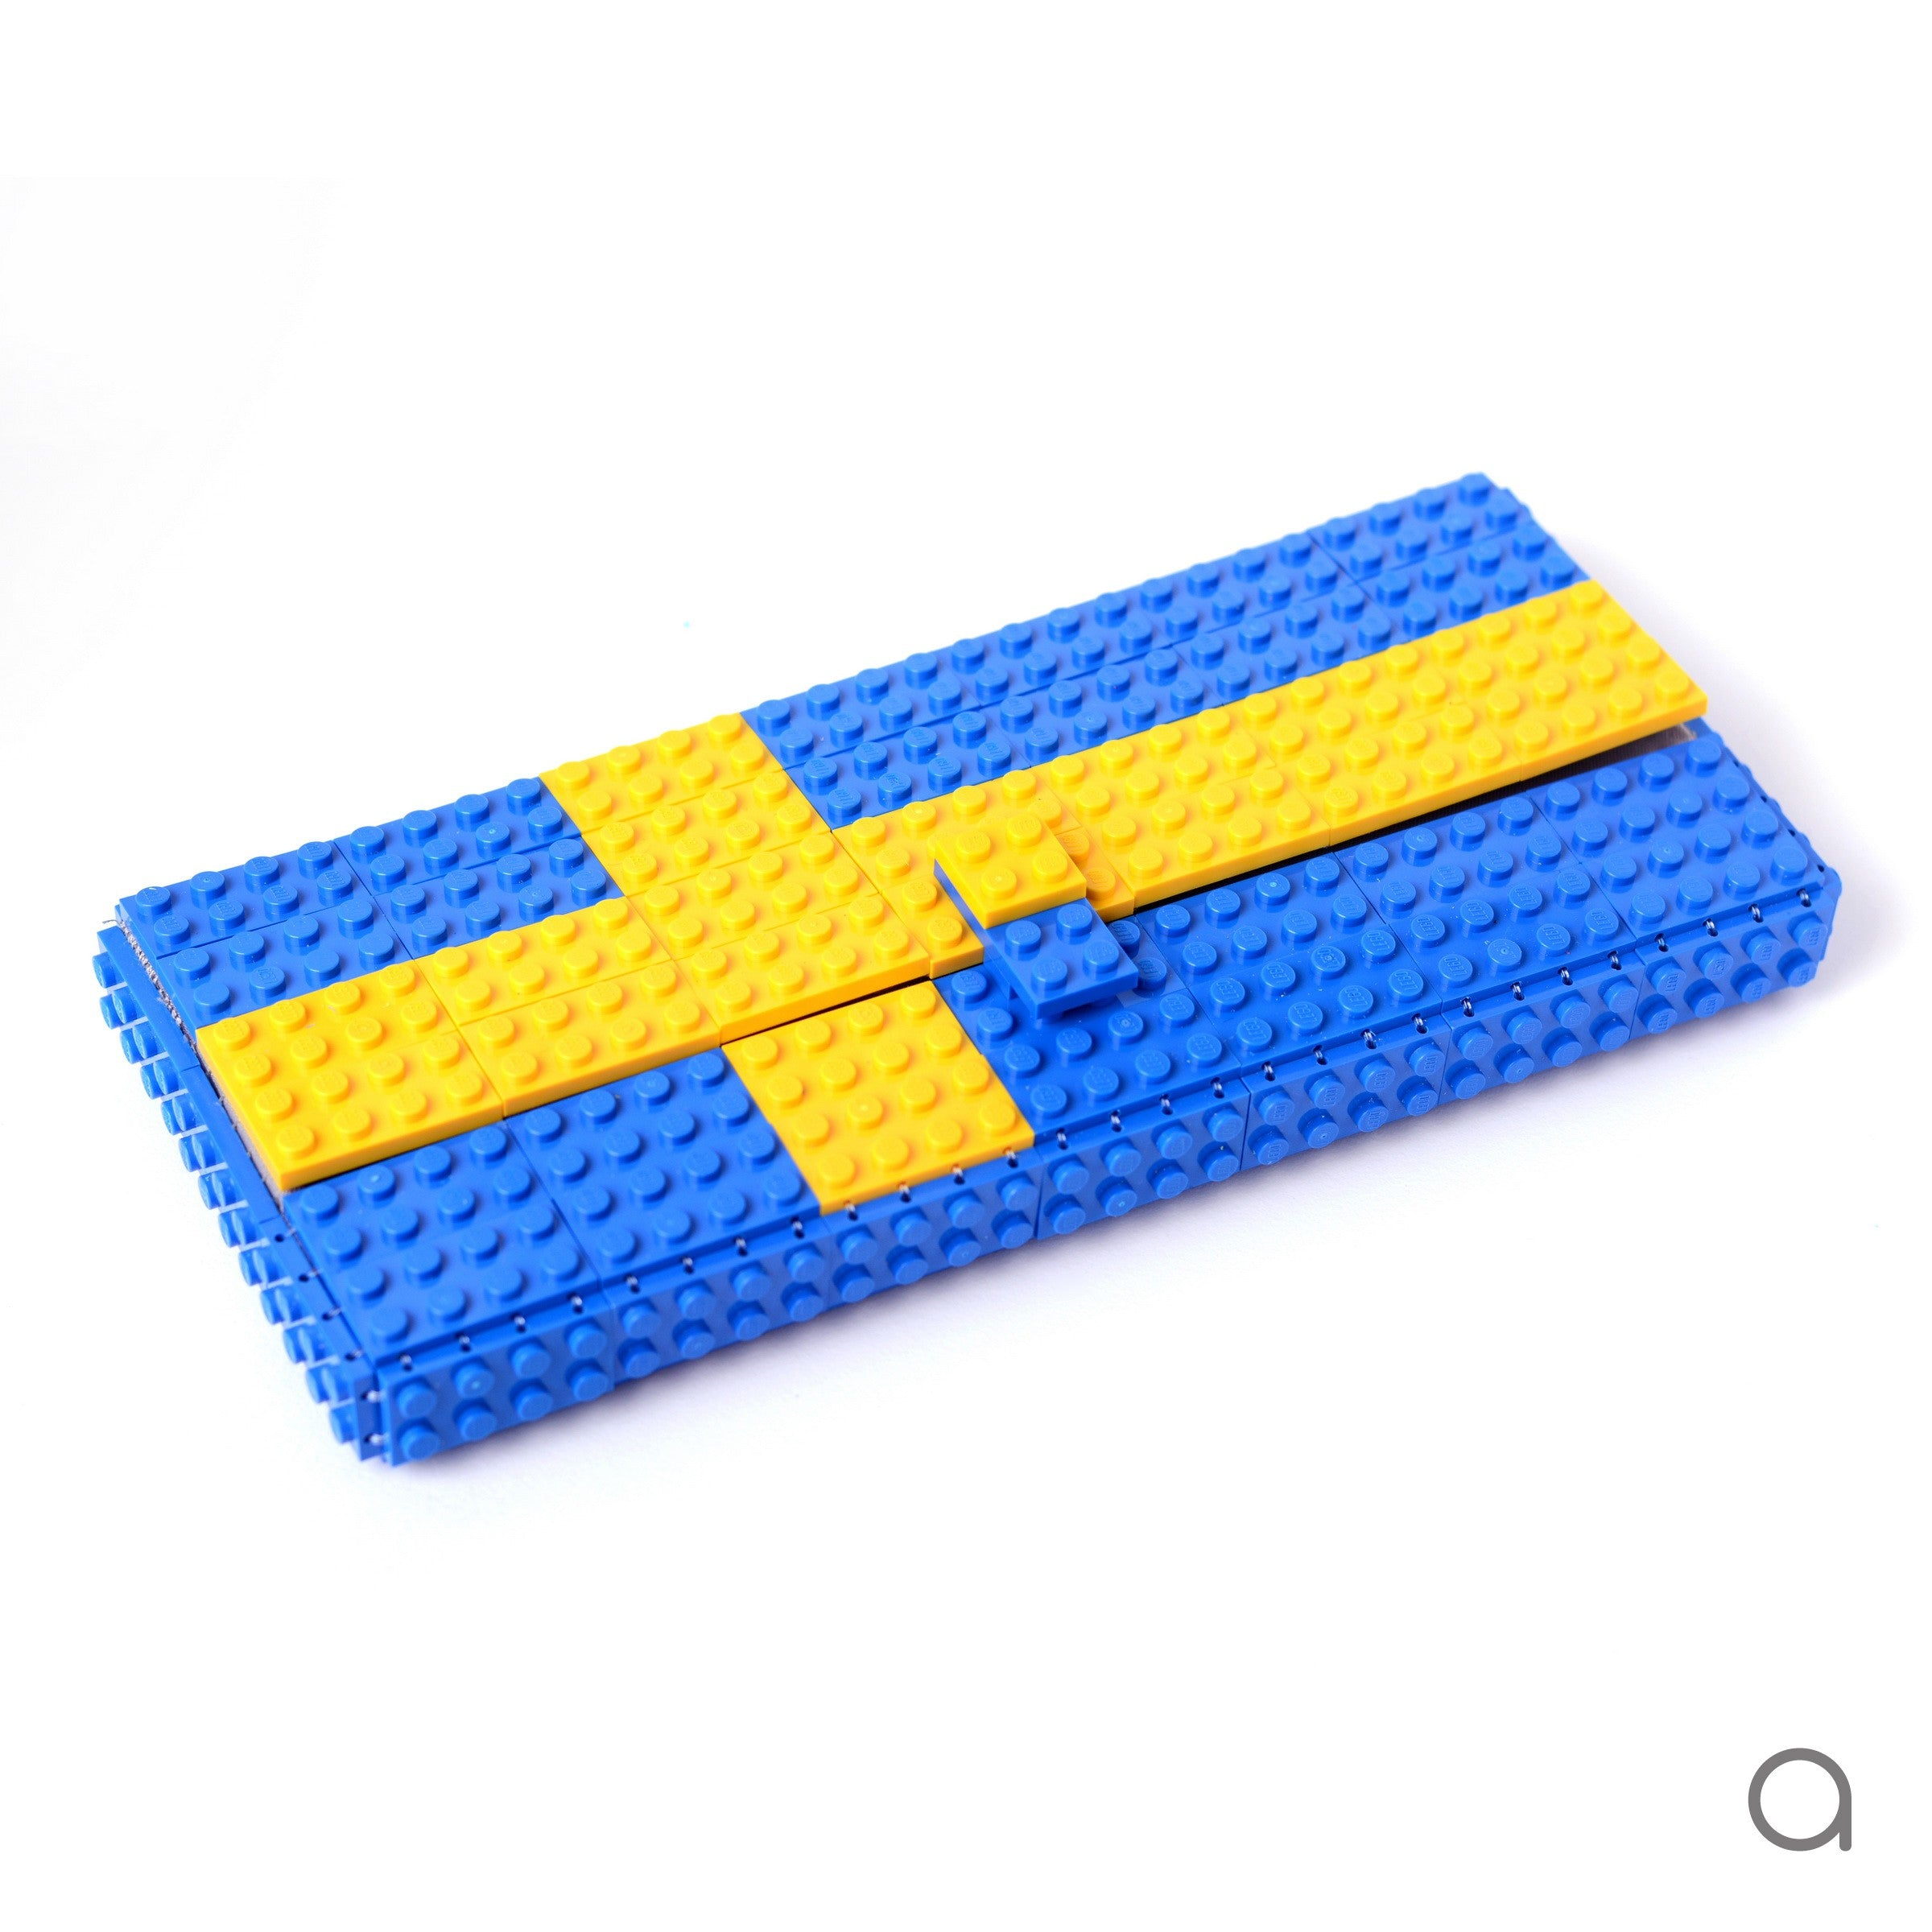 Swedish flag clutch